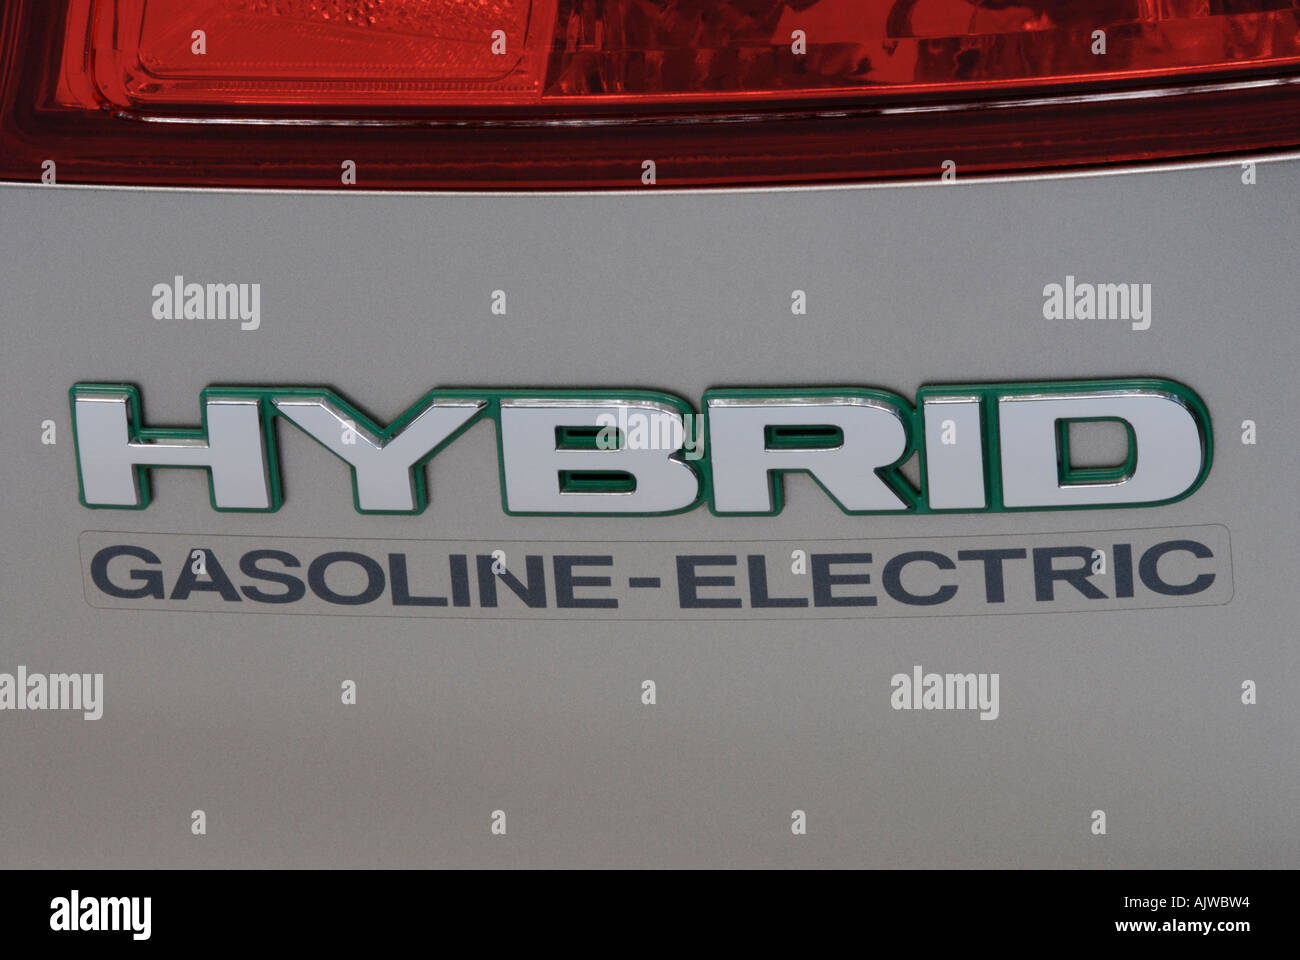 Gasoline-electric hybrid car logo - Stock Image